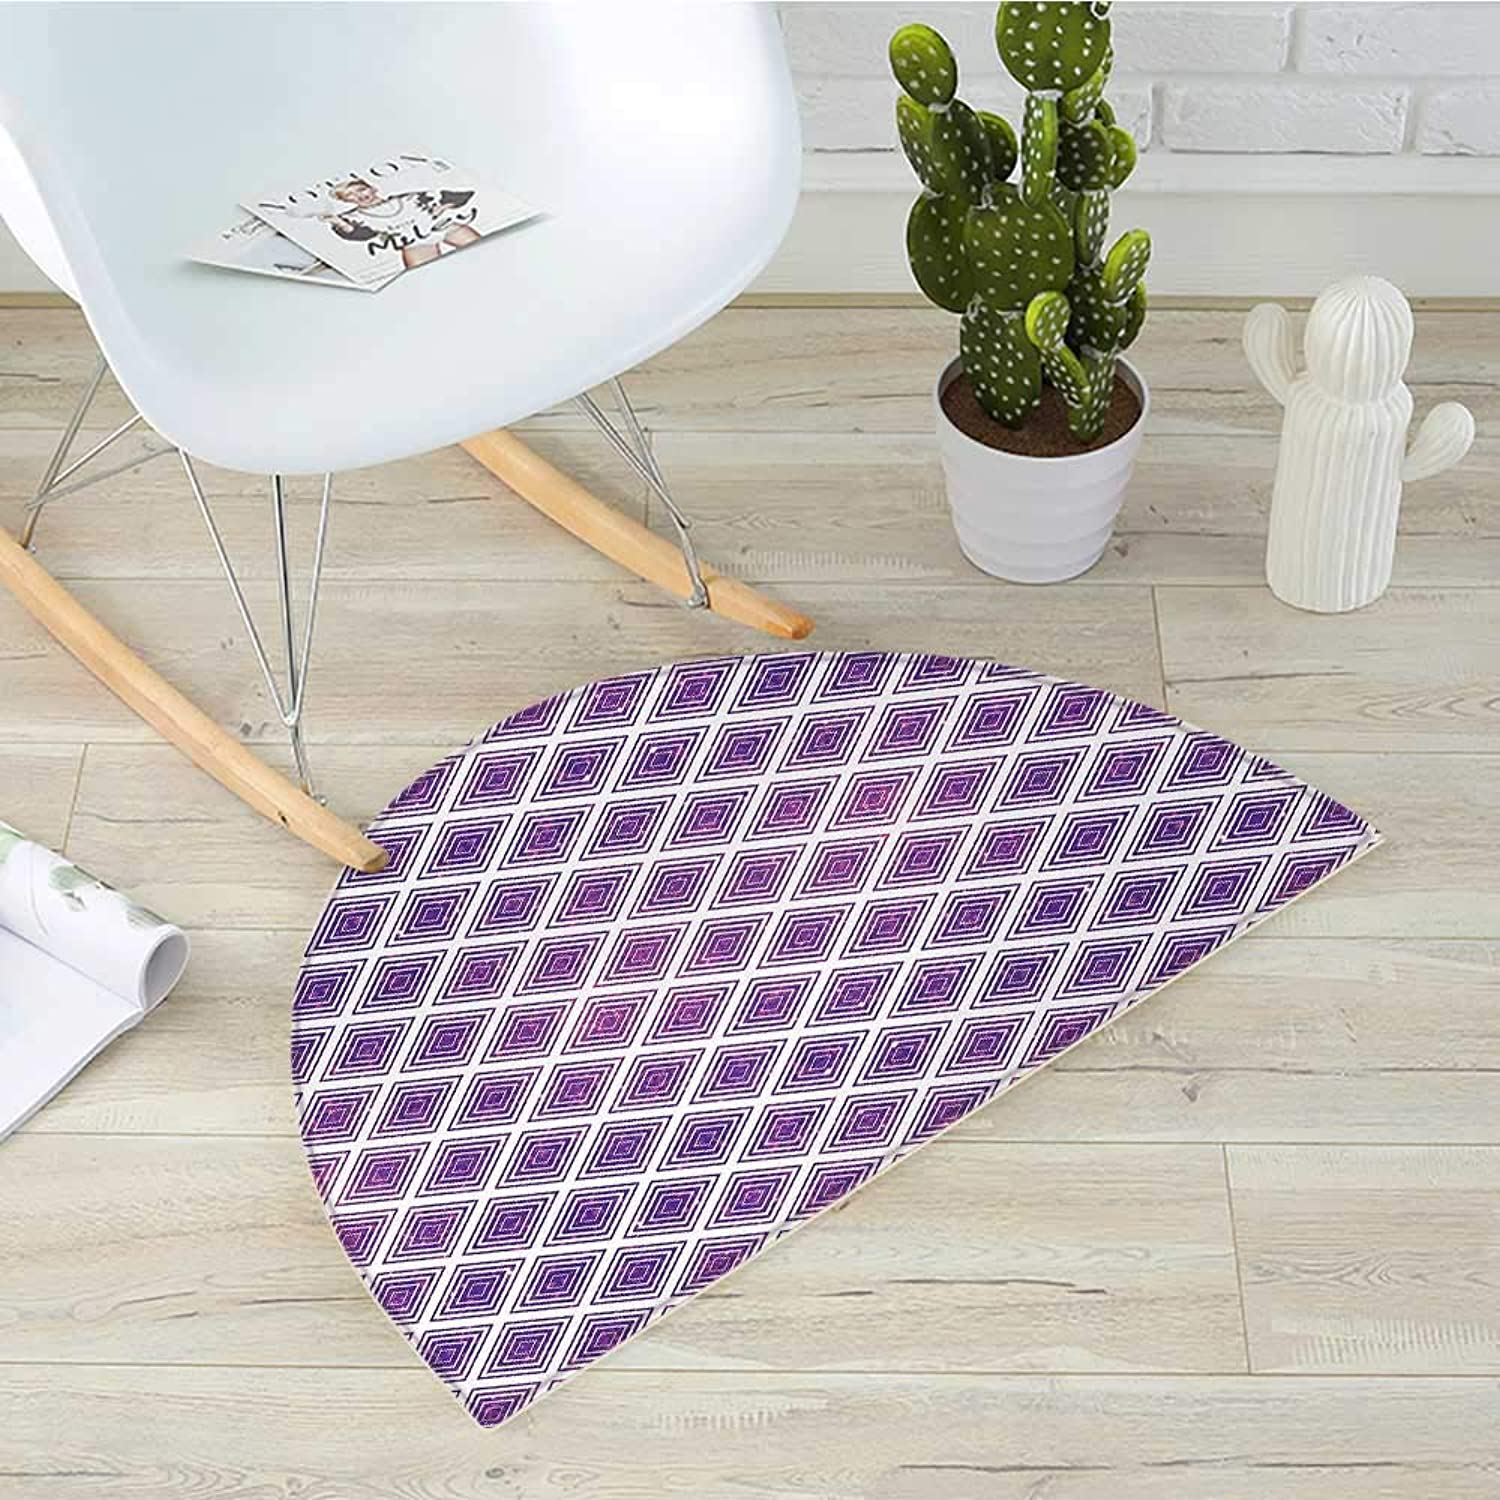 Purple Semicircular CushionRetro Style Innovative Abstract Squares Pattern Modern Design Graphic Print Entry Door Mat H 51.1  xD 76.7  purple and White